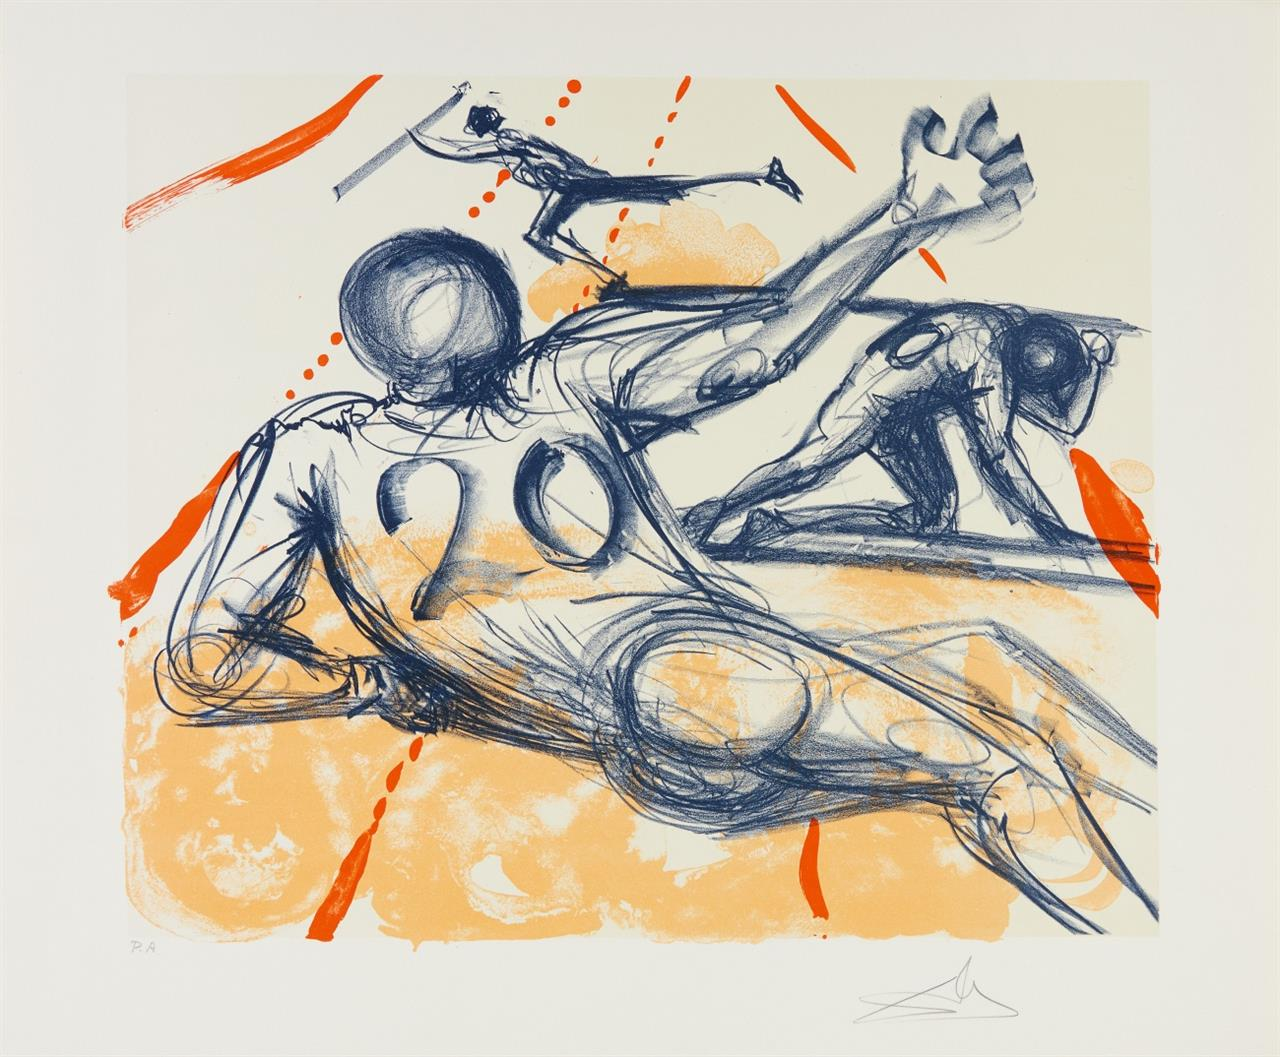 Salvador Dalí. Sports. 1973. Farblithographie. Signiert. Ex. P.A. ML 1424; F.73-2 B.